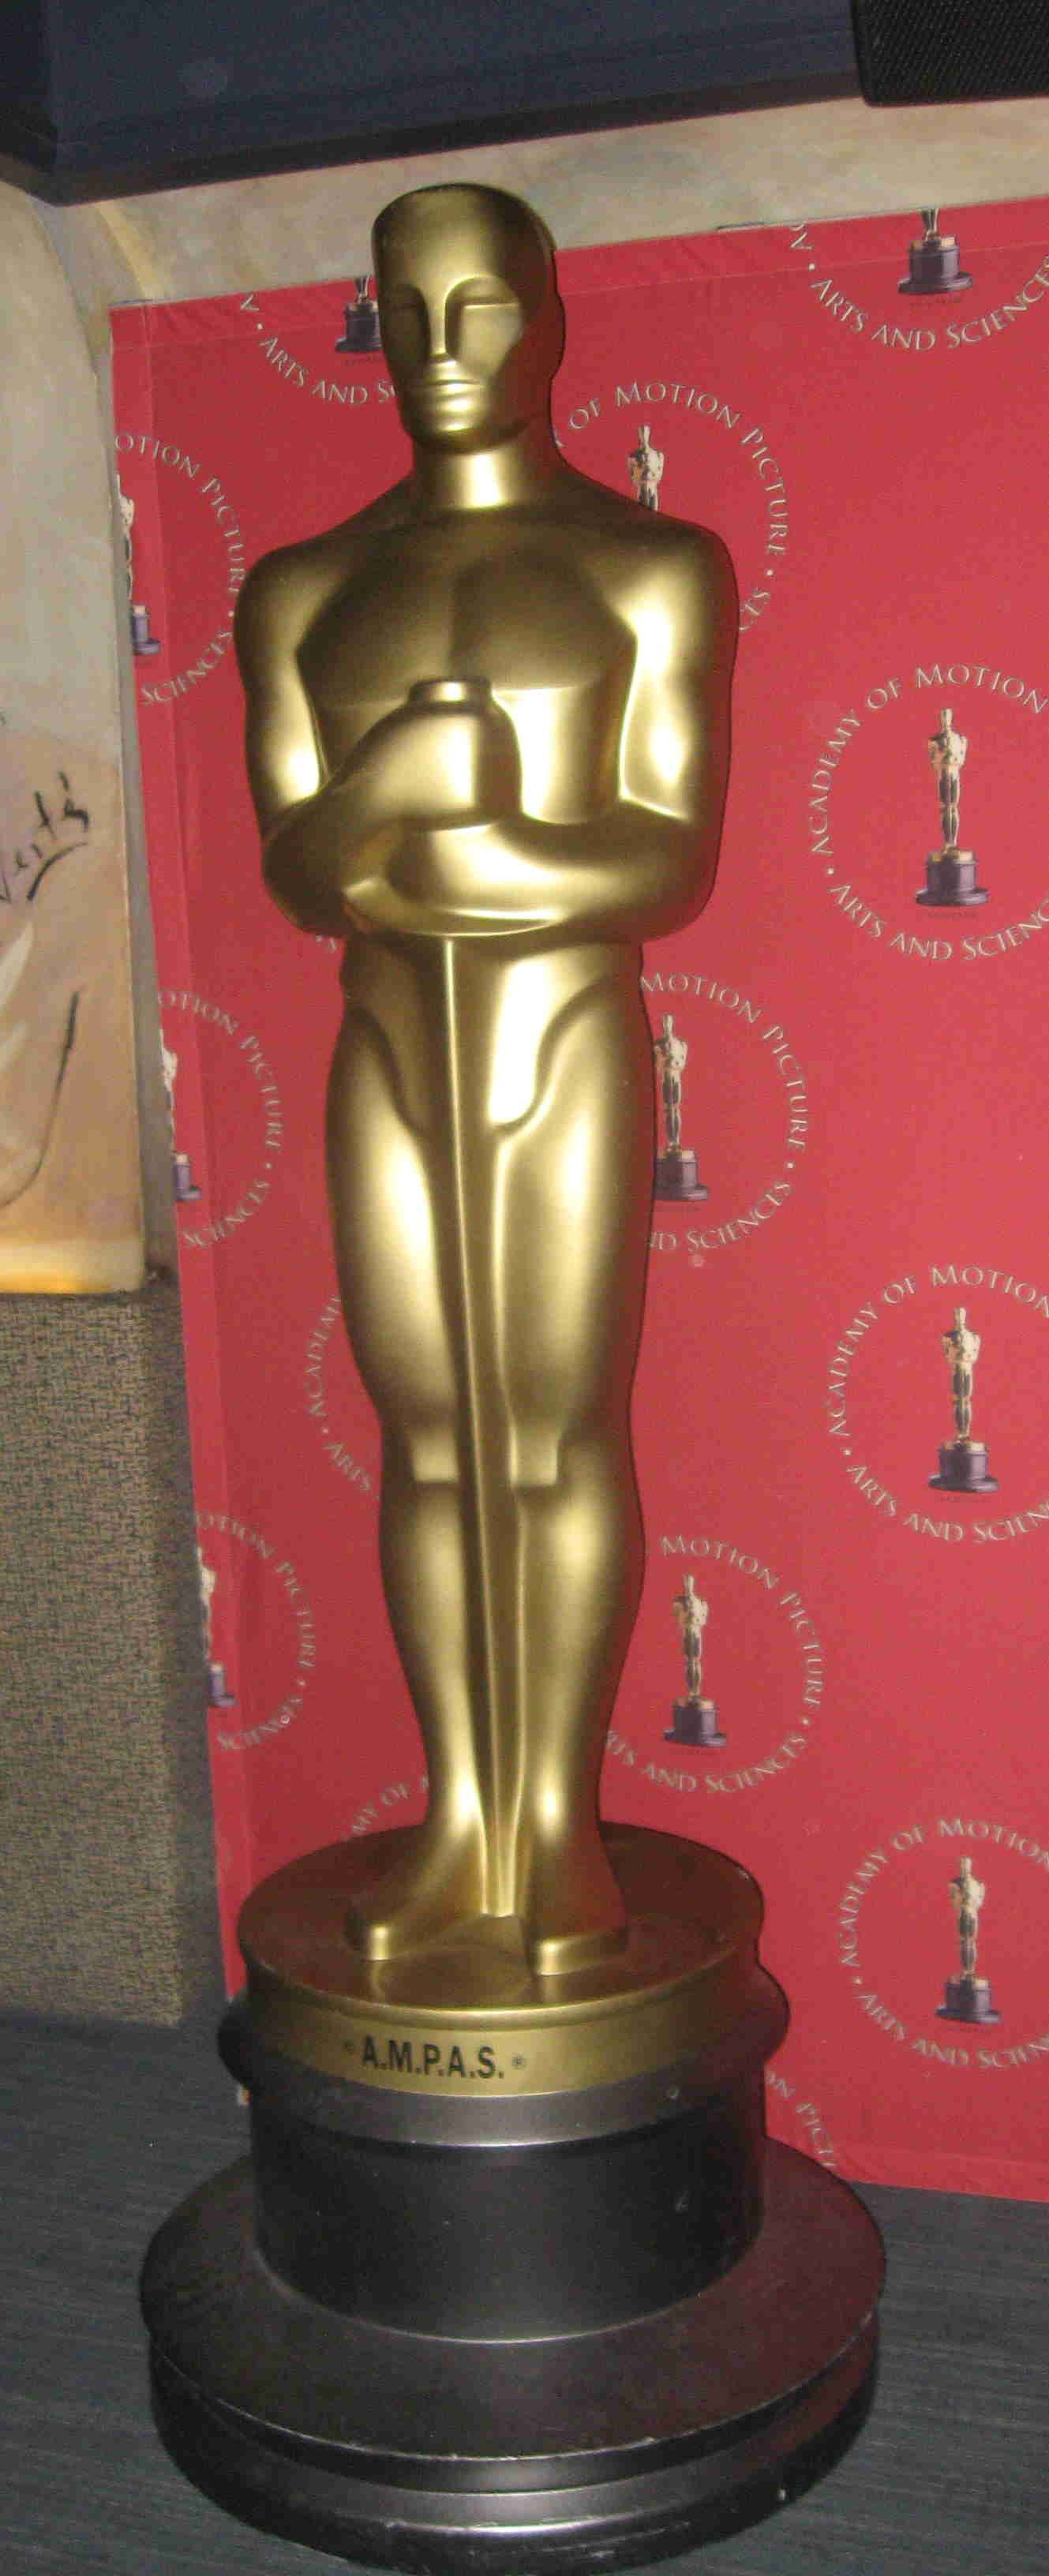 Download Animationofall Cartoon Movie 629868 moreover Hollywood Theme Props Gold Hollywood Award Statue 7ft Tall likewise Hummingbirds Rose Apple Flowers furthermore Blank Check Certificate likewise Attendance Award High School 344. on oscar award categories and description